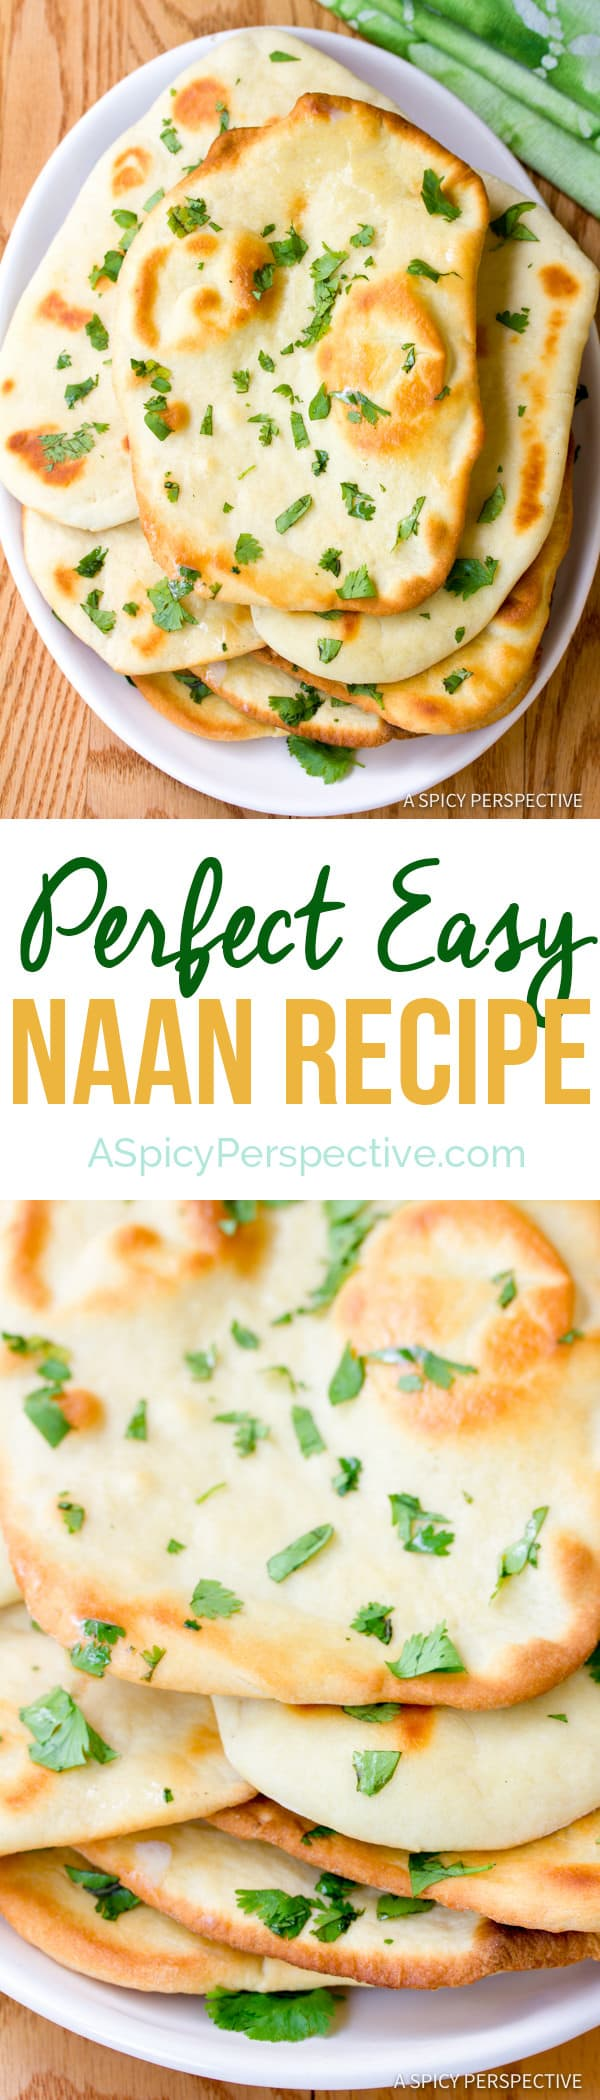 Perfect Easy Naan Recipe | ASpicyPerspective.com